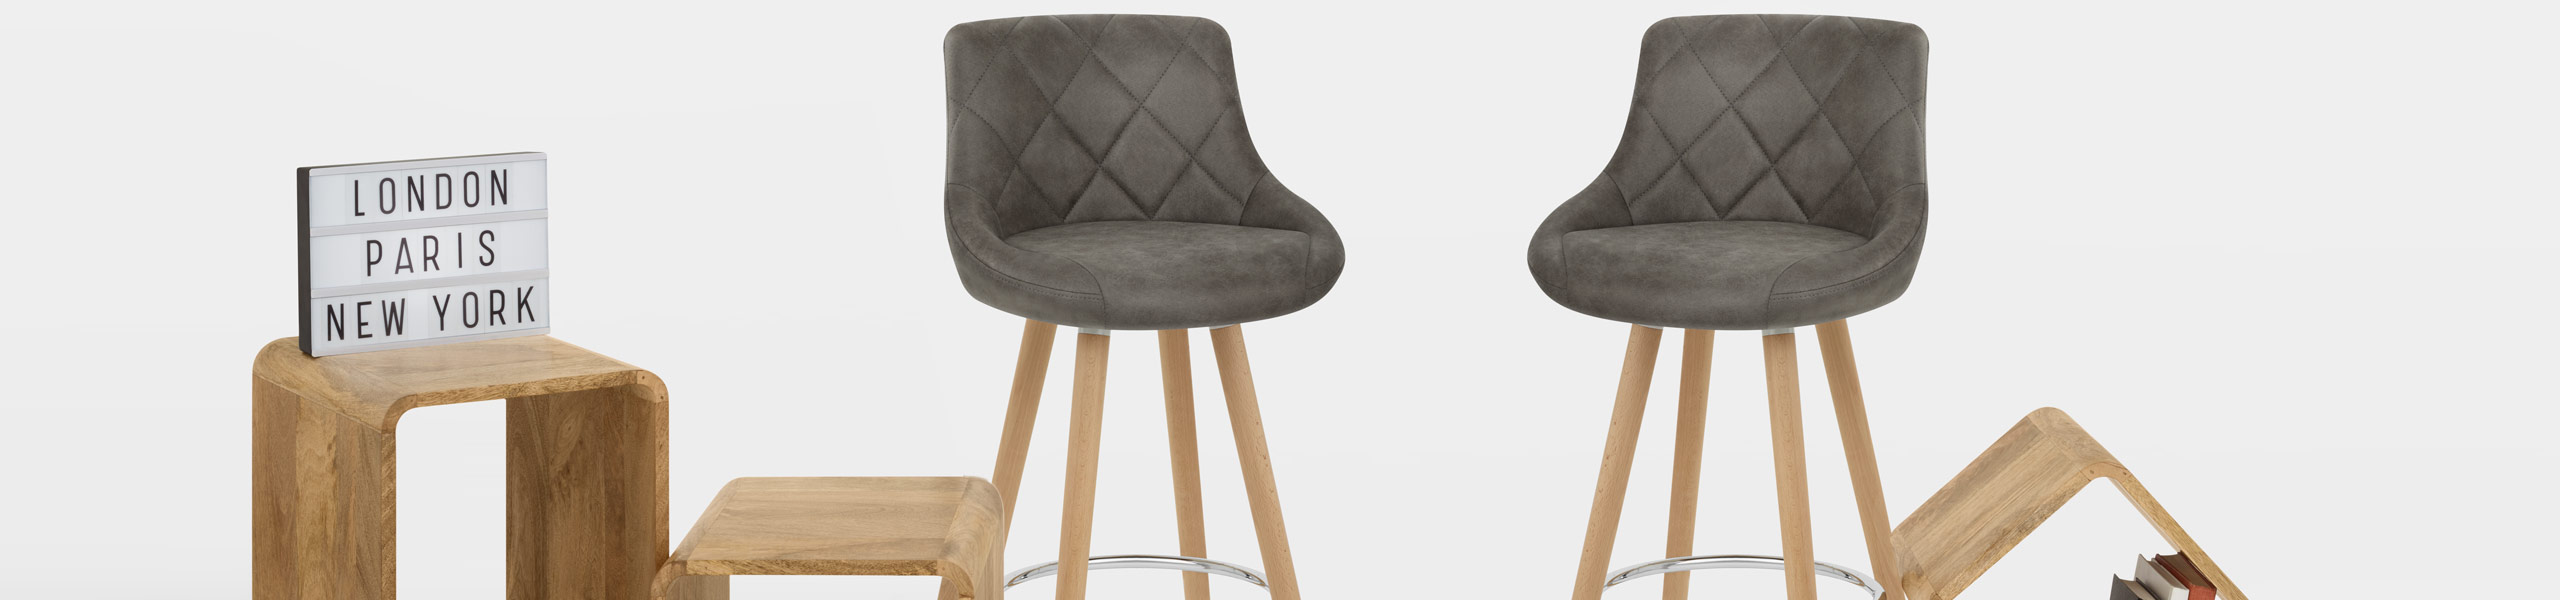 Fuse Wooden Stool Charcoal Video Banner